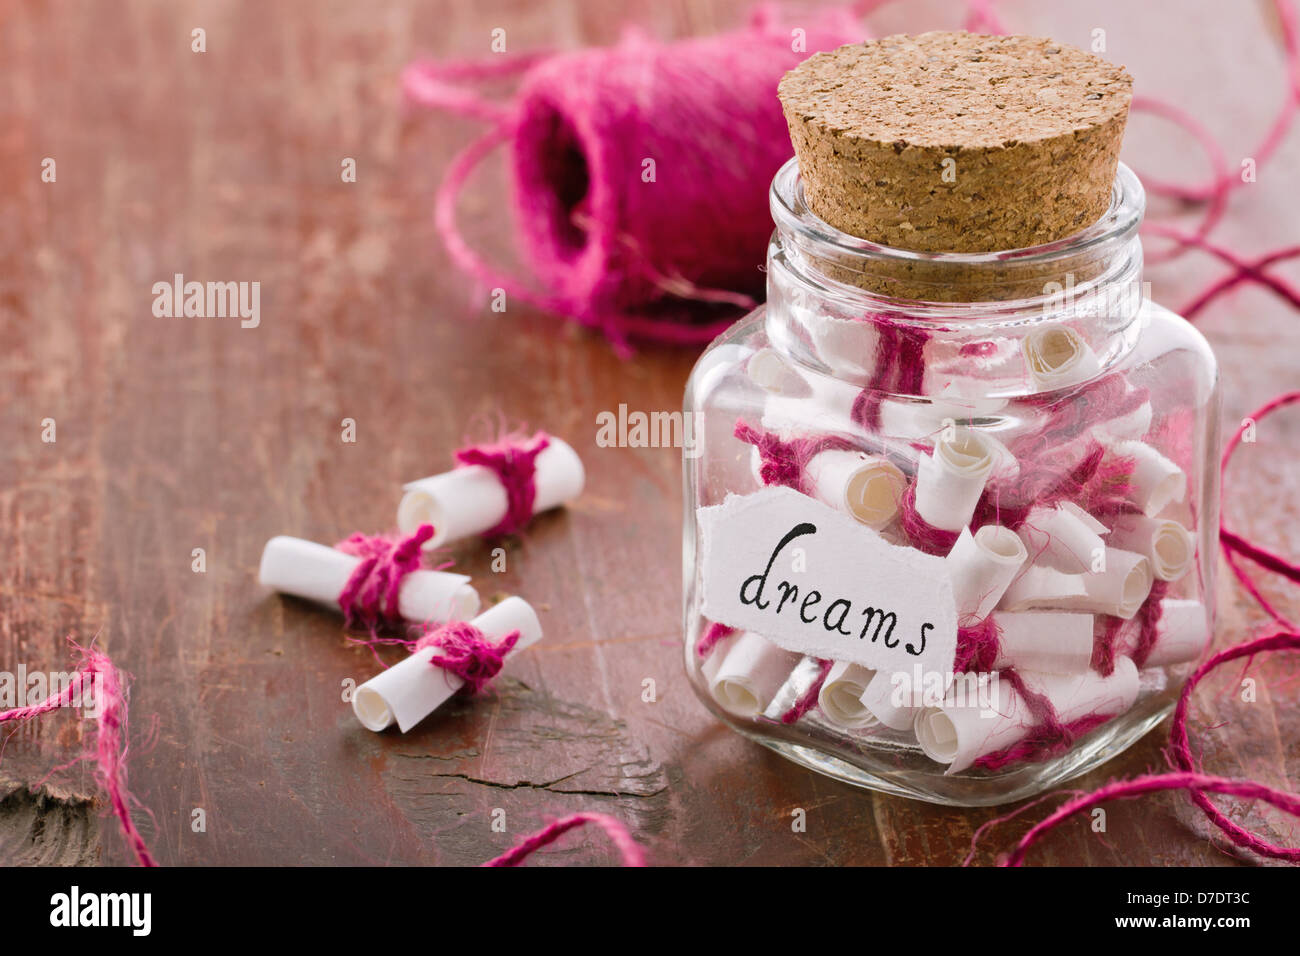 Dreams written on a white rolled paper in a glass jar on rustic vintage wooden background, dreaming optimism concept - Stock Image